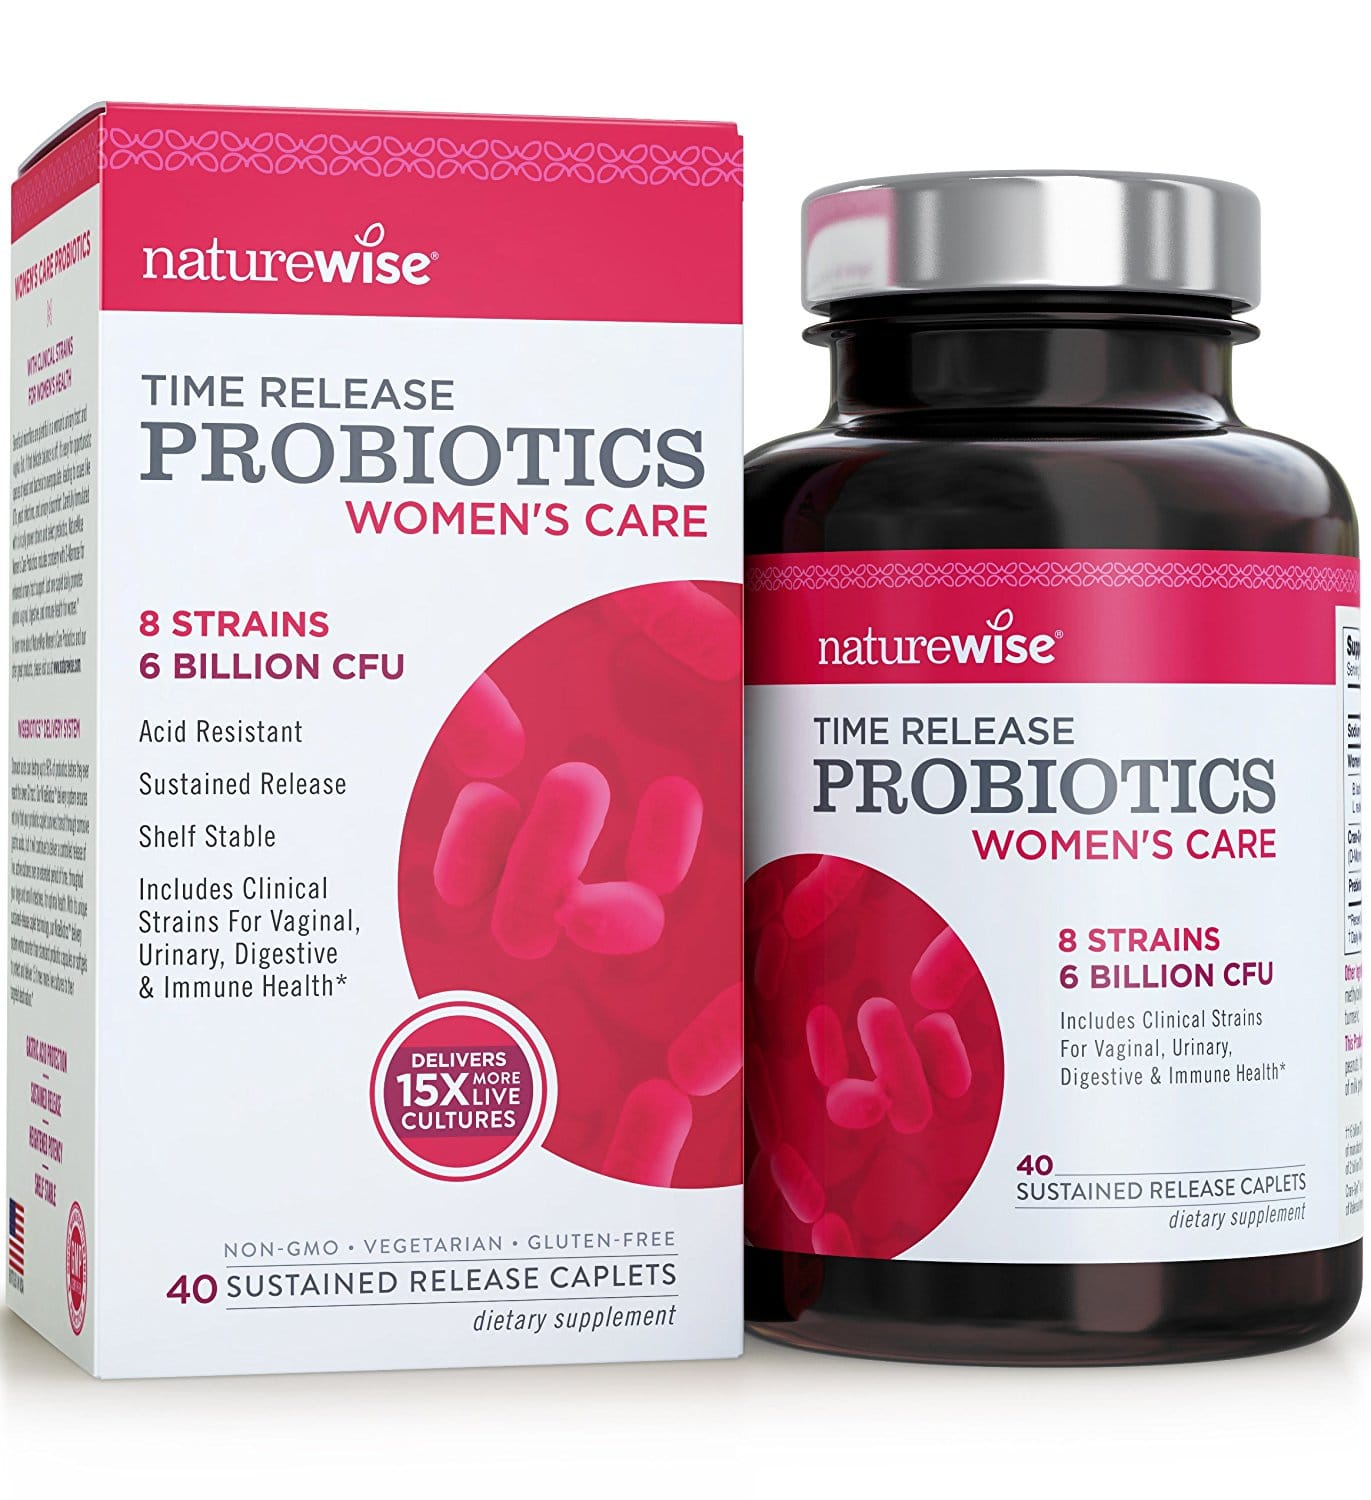 Packaging and Bottle of NatureWise Women's Probiotics